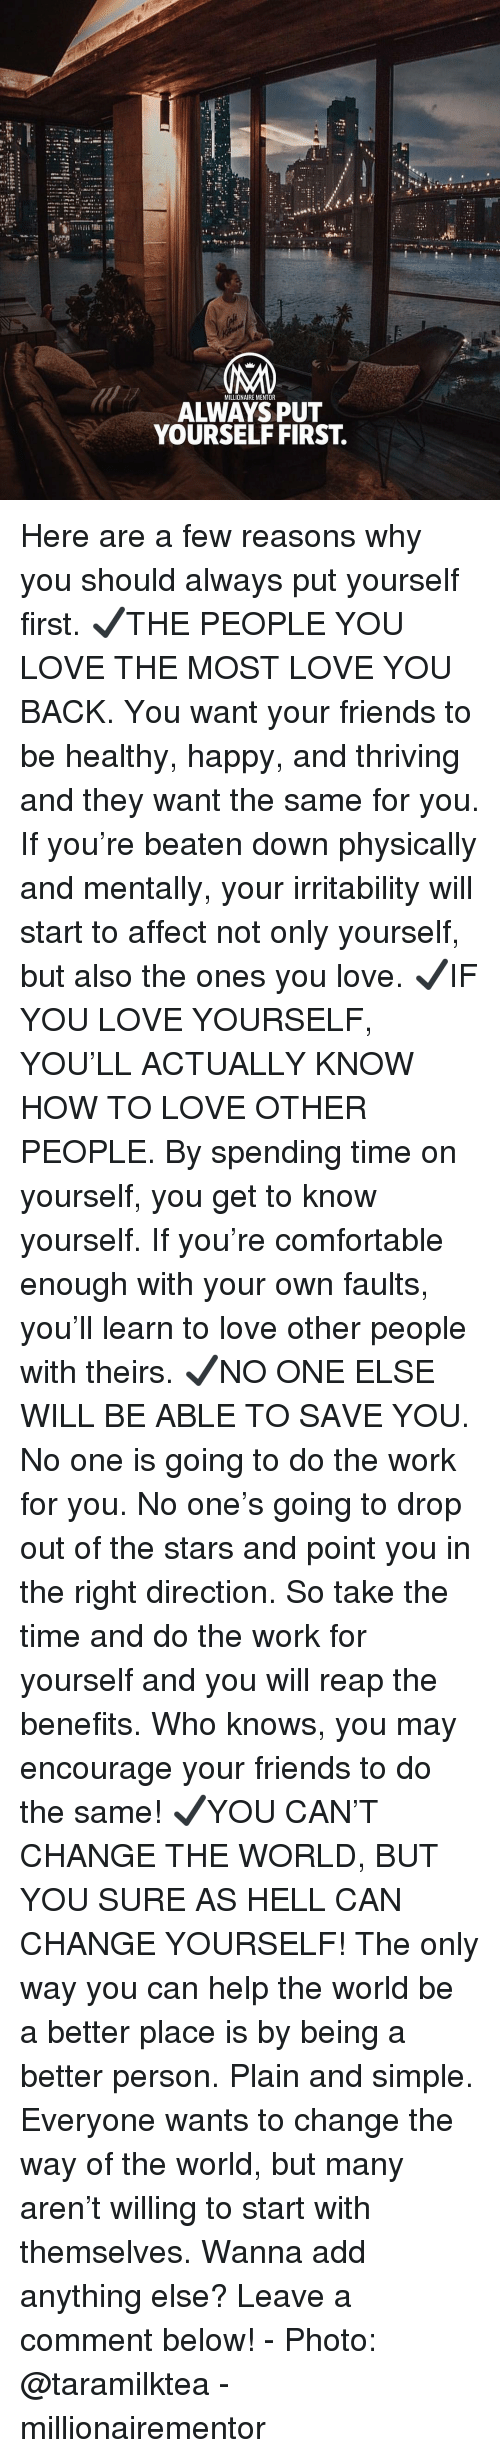 irritability: NM  MILLIONAIRE MENTOR  ALWAYS PUT  YOURSELF FIRST. Here are a few reasons why you should always put yourself first. ✔️THE PEOPLE YOU LOVE THE MOST LOVE YOU BACK. You want your friends to be healthy, happy, and thriving and they want the same for you. If you're beaten down physically and mentally, your irritability will start to affect not only yourself, but also the ones you love. ✔️IF YOU LOVE YOURSELF, YOU'LL ACTUALLY KNOW HOW TO LOVE OTHER PEOPLE. By spending time on yourself, you get to know yourself. If you're comfortable enough with your own faults, you'll learn to love other people with theirs. ✔️NO ONE ELSE WILL BE ABLE TO SAVE YOU. No one is going to do the work for you. No one's going to drop out of the stars and point you in the right direction. So take the time and do the work for yourself and you will reap the benefits. Who knows, you may encourage your friends to do the same! ✔️YOU CAN'T CHANGE THE WORLD, BUT YOU SURE AS HELL CAN CHANGE YOURSELF! The only way you can help the world be a better place is by being a better person. Plain and simple. Everyone wants to change the way of the world, but many aren't willing to start with themselves. Wanna add anything else? Leave a comment below! - Photo: @taramilktea - millionairementor